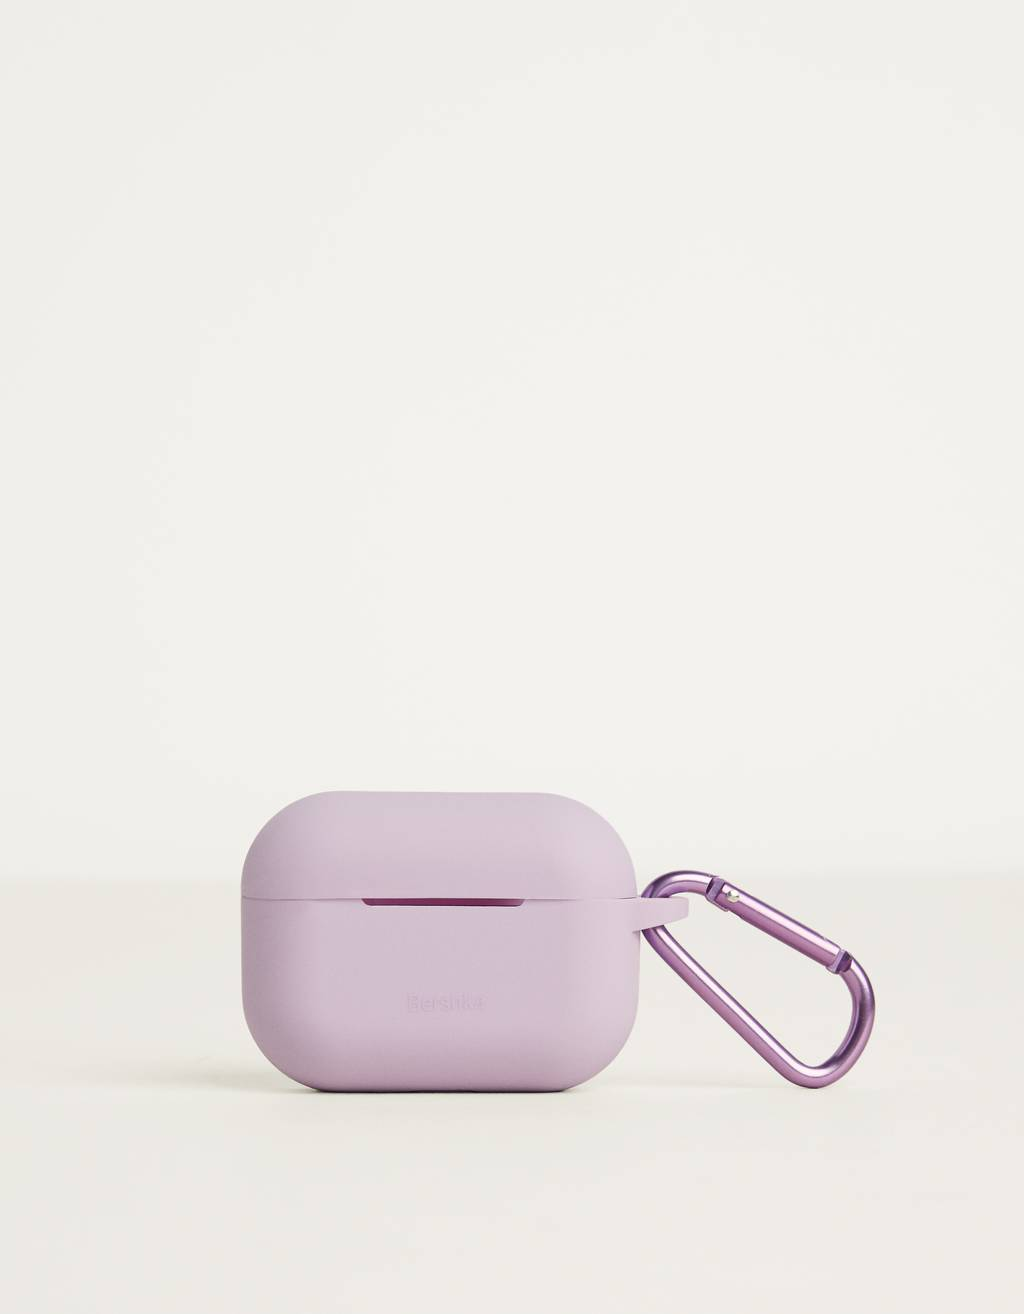 AirPod case with carabiner